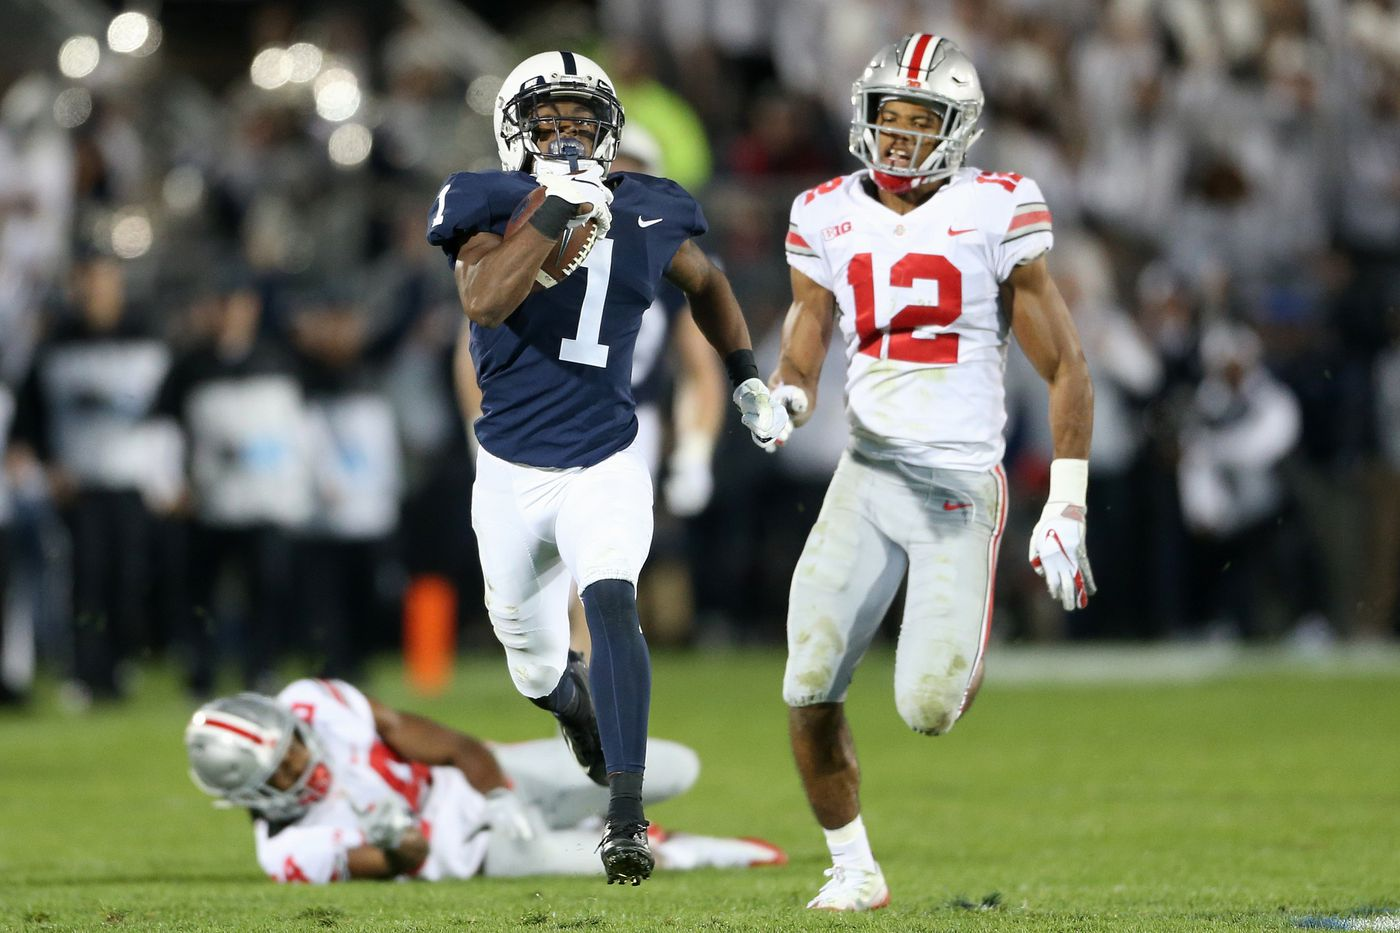 Trace McSorley, K.J. Hamler's 93-yard touchdown pass in Penn State vs. Ohio State ranked second longest in school history